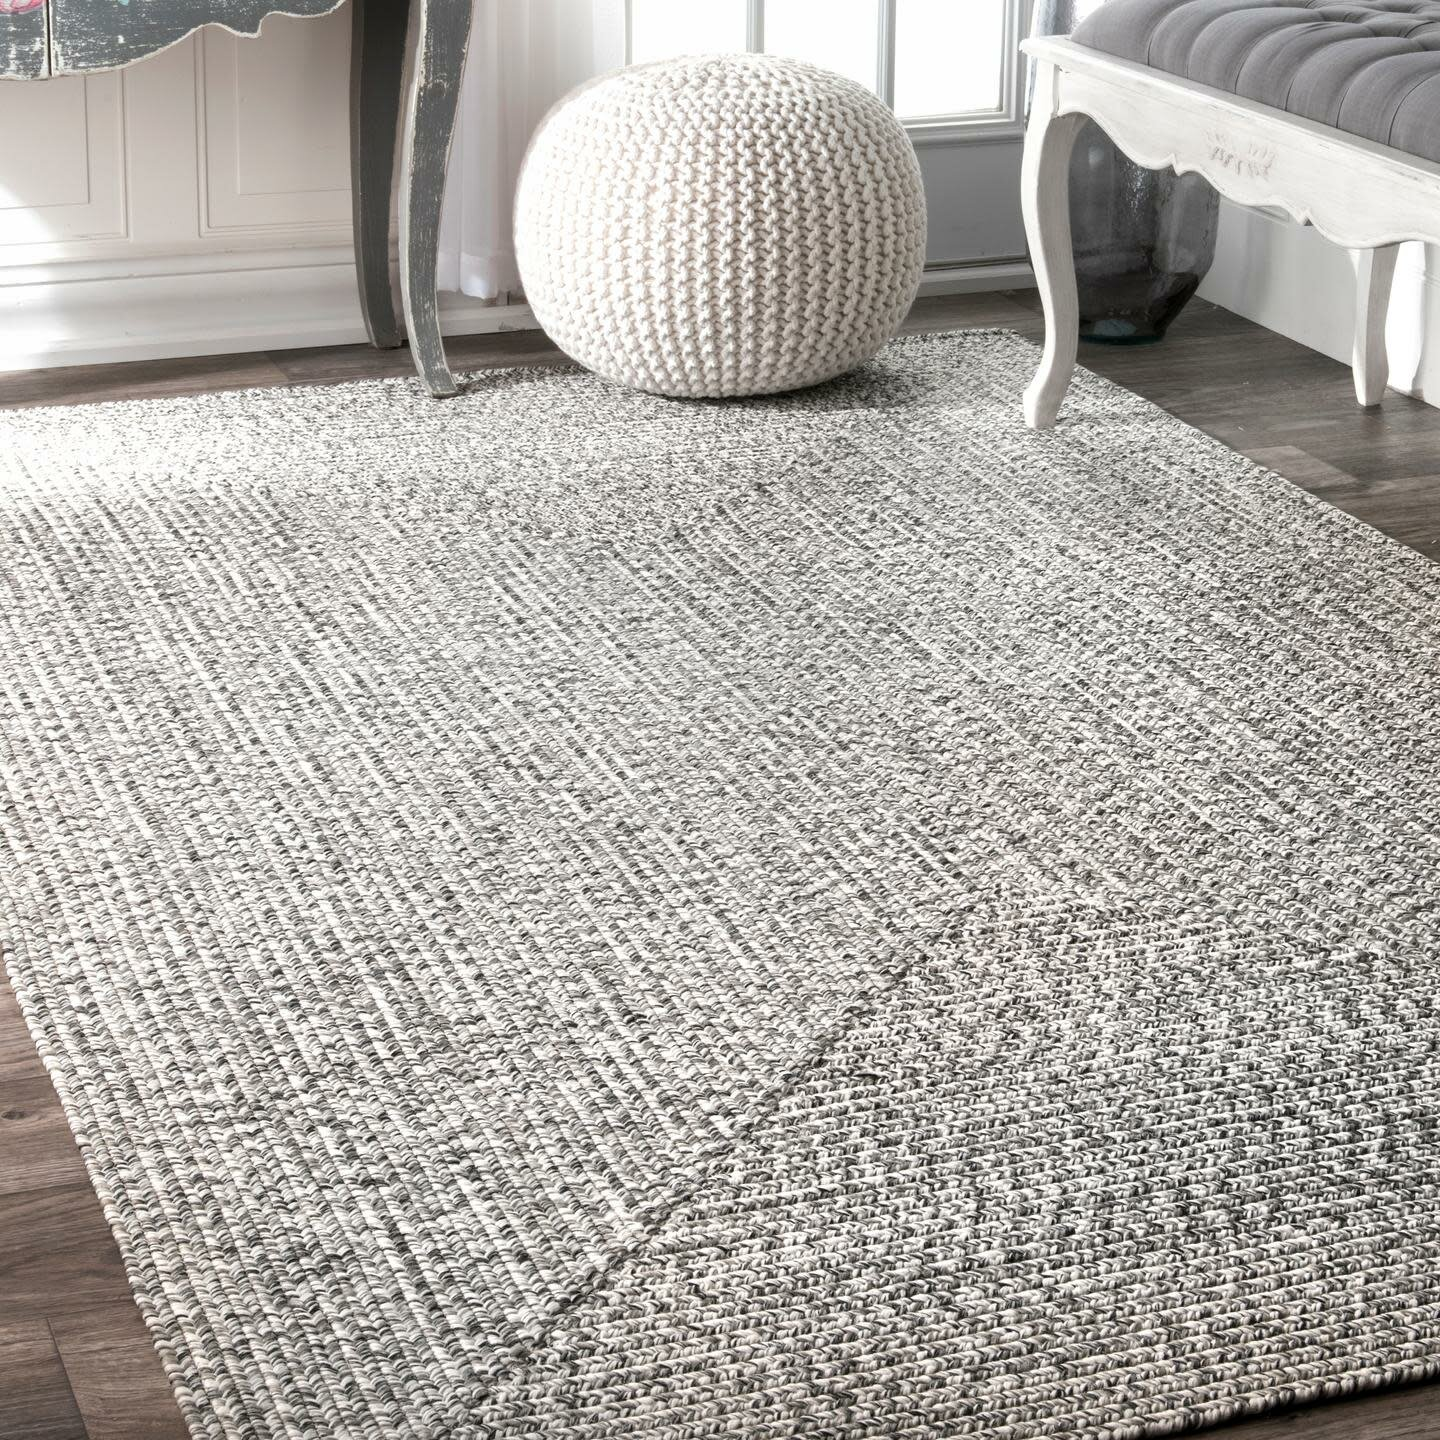 Walmsley Gray Area Rug Reviews